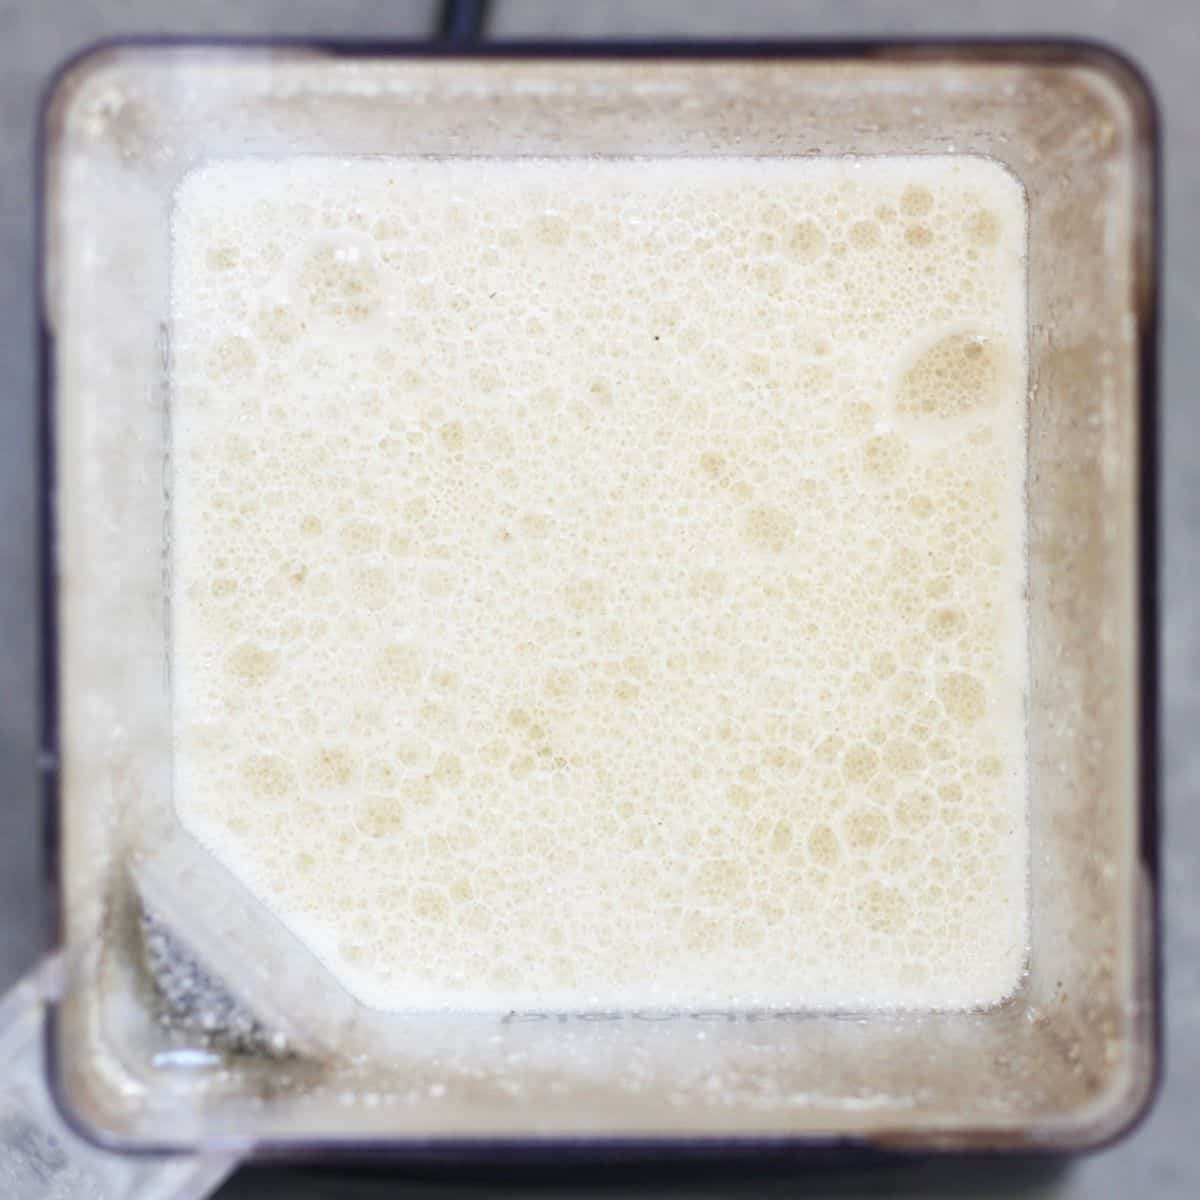 Frothy gluten free oat milk in blender, looking down from above